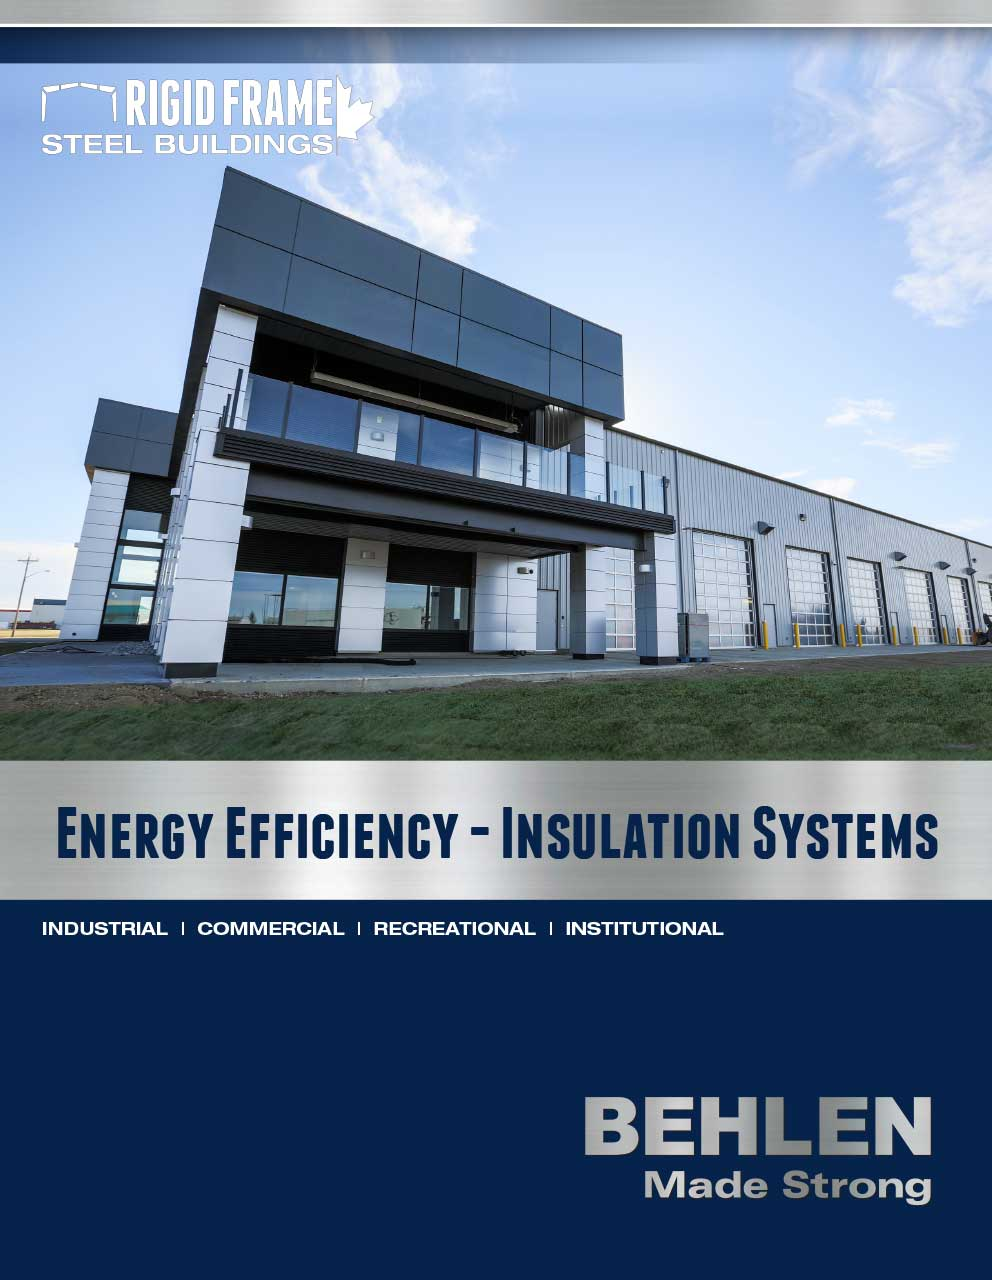 Behlen Industries - Rigid Frame Insulation Systems